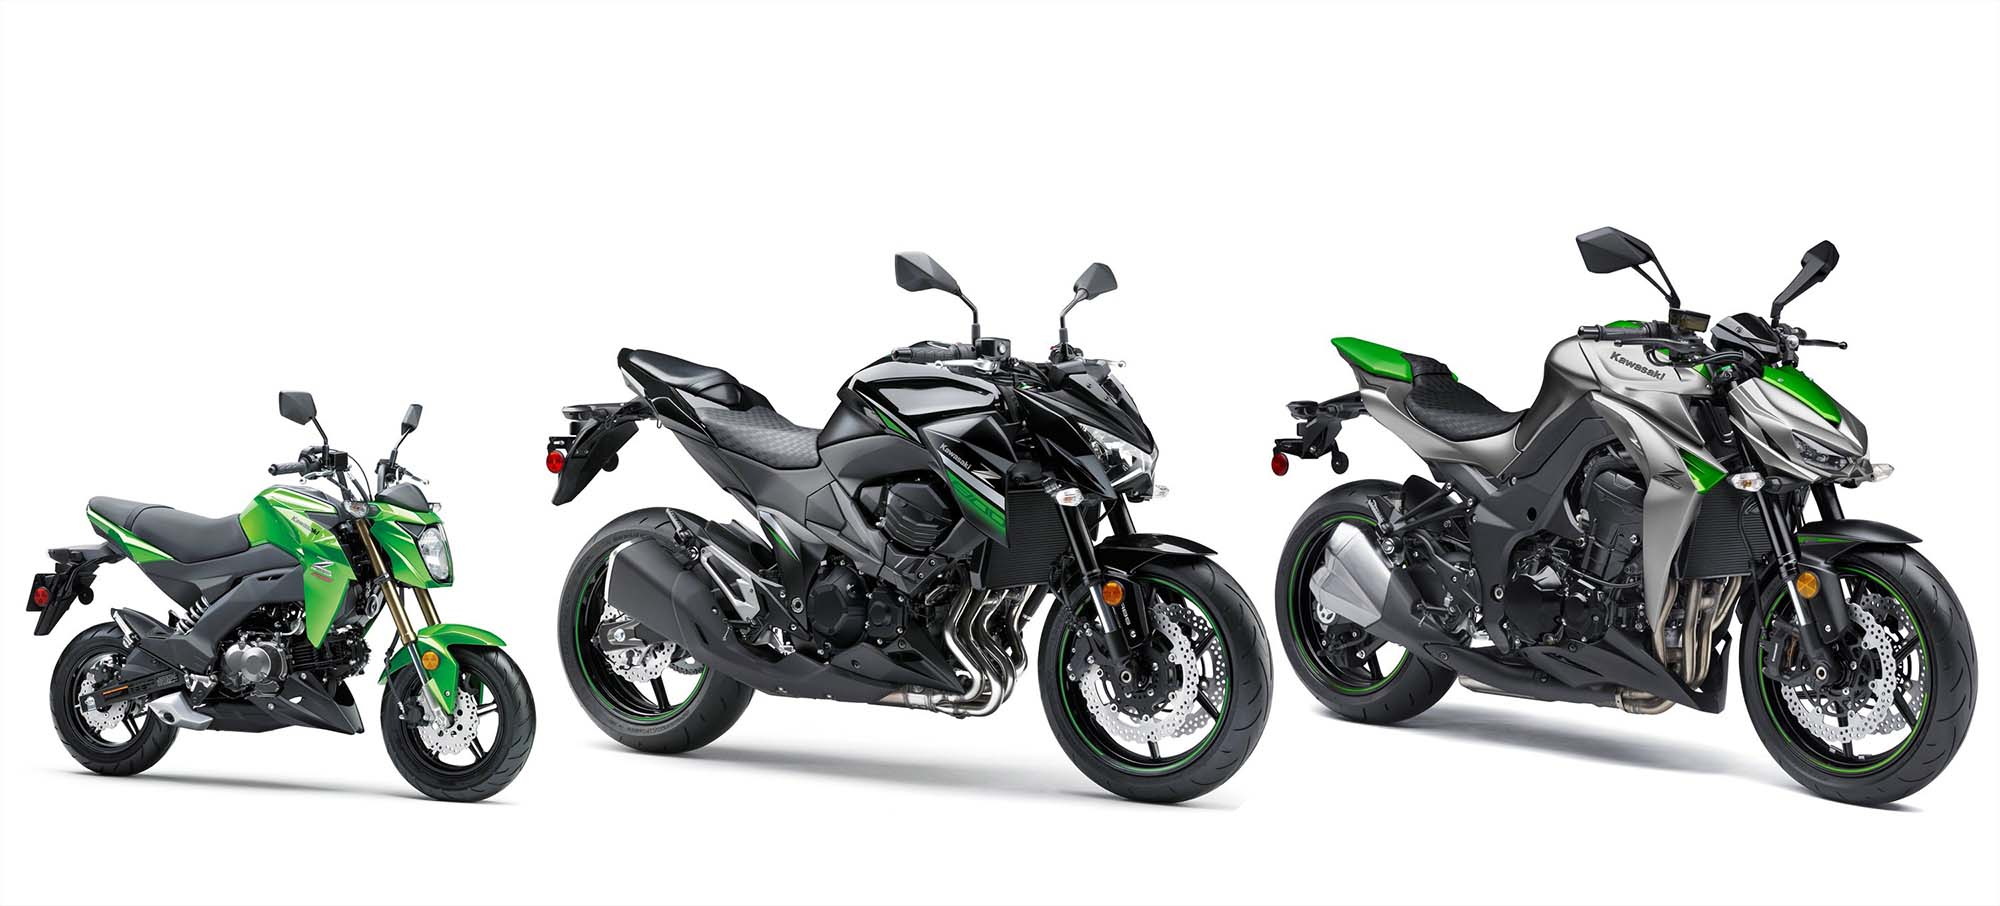 Step Aside Honda Grom, Here's the 2017 Kawasaki Z125 Pro